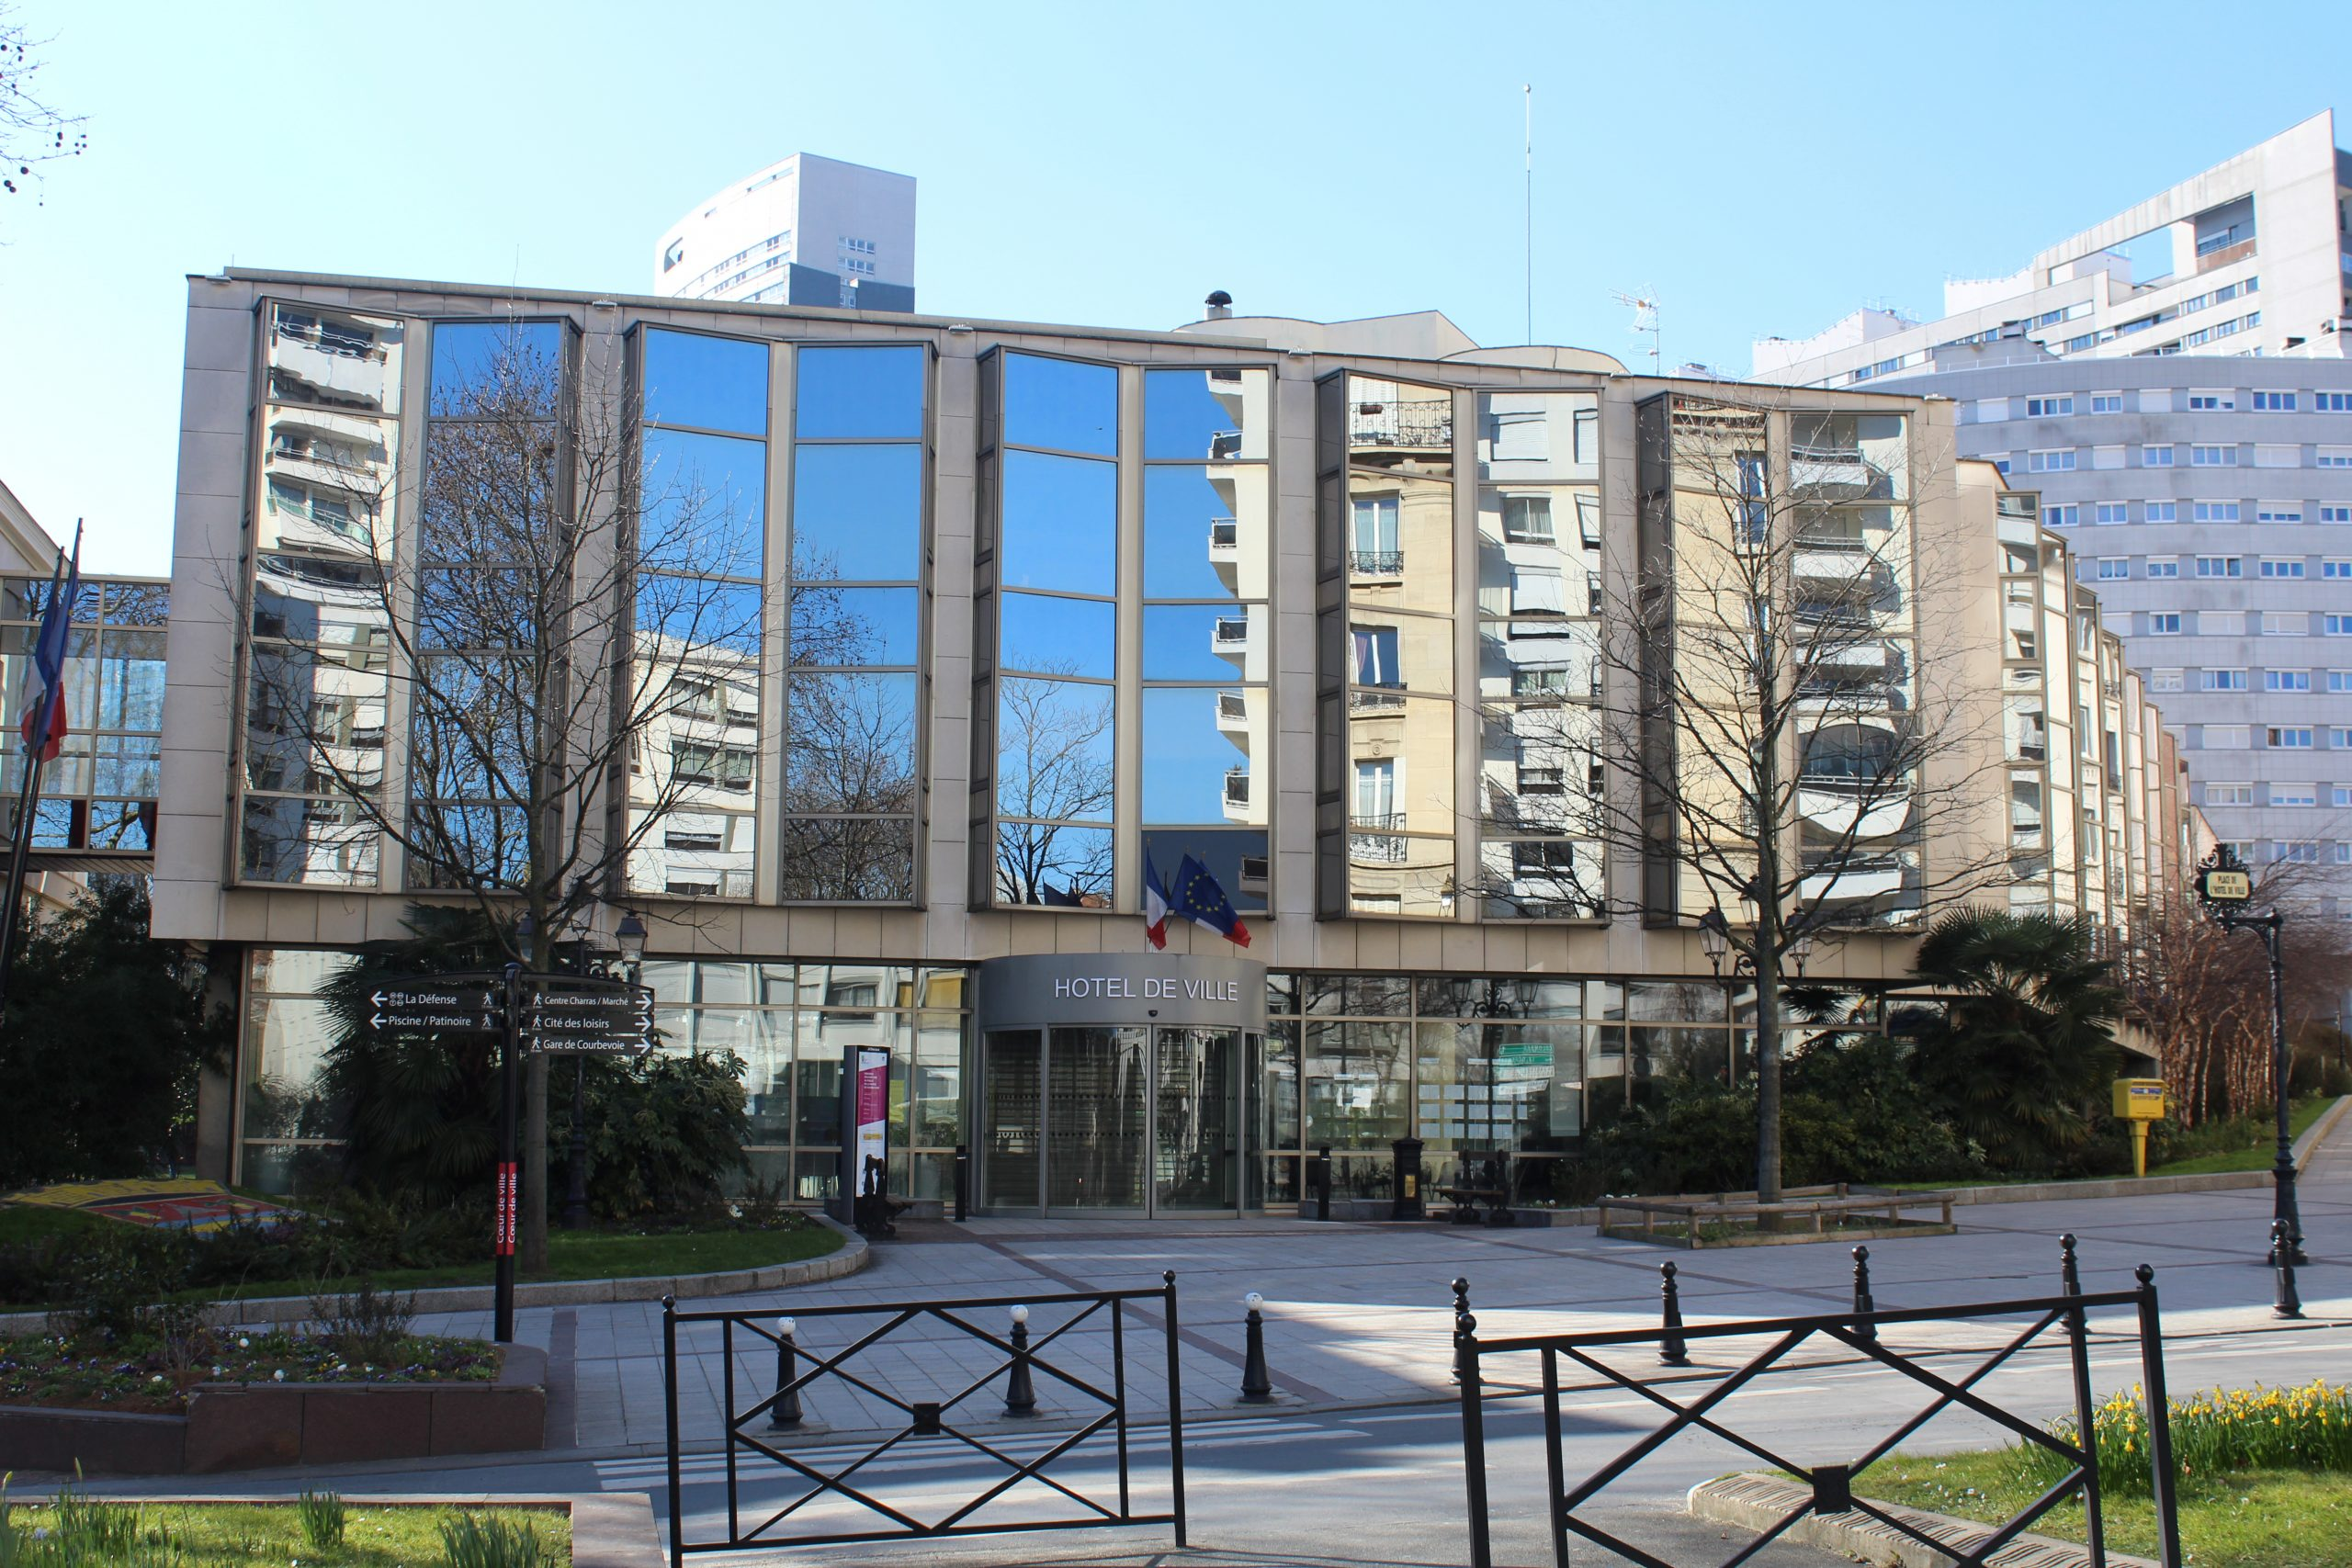 File:mairie Courbevoie 3.jpg - Wikimedia Commons concernant Piscine Courbevoie